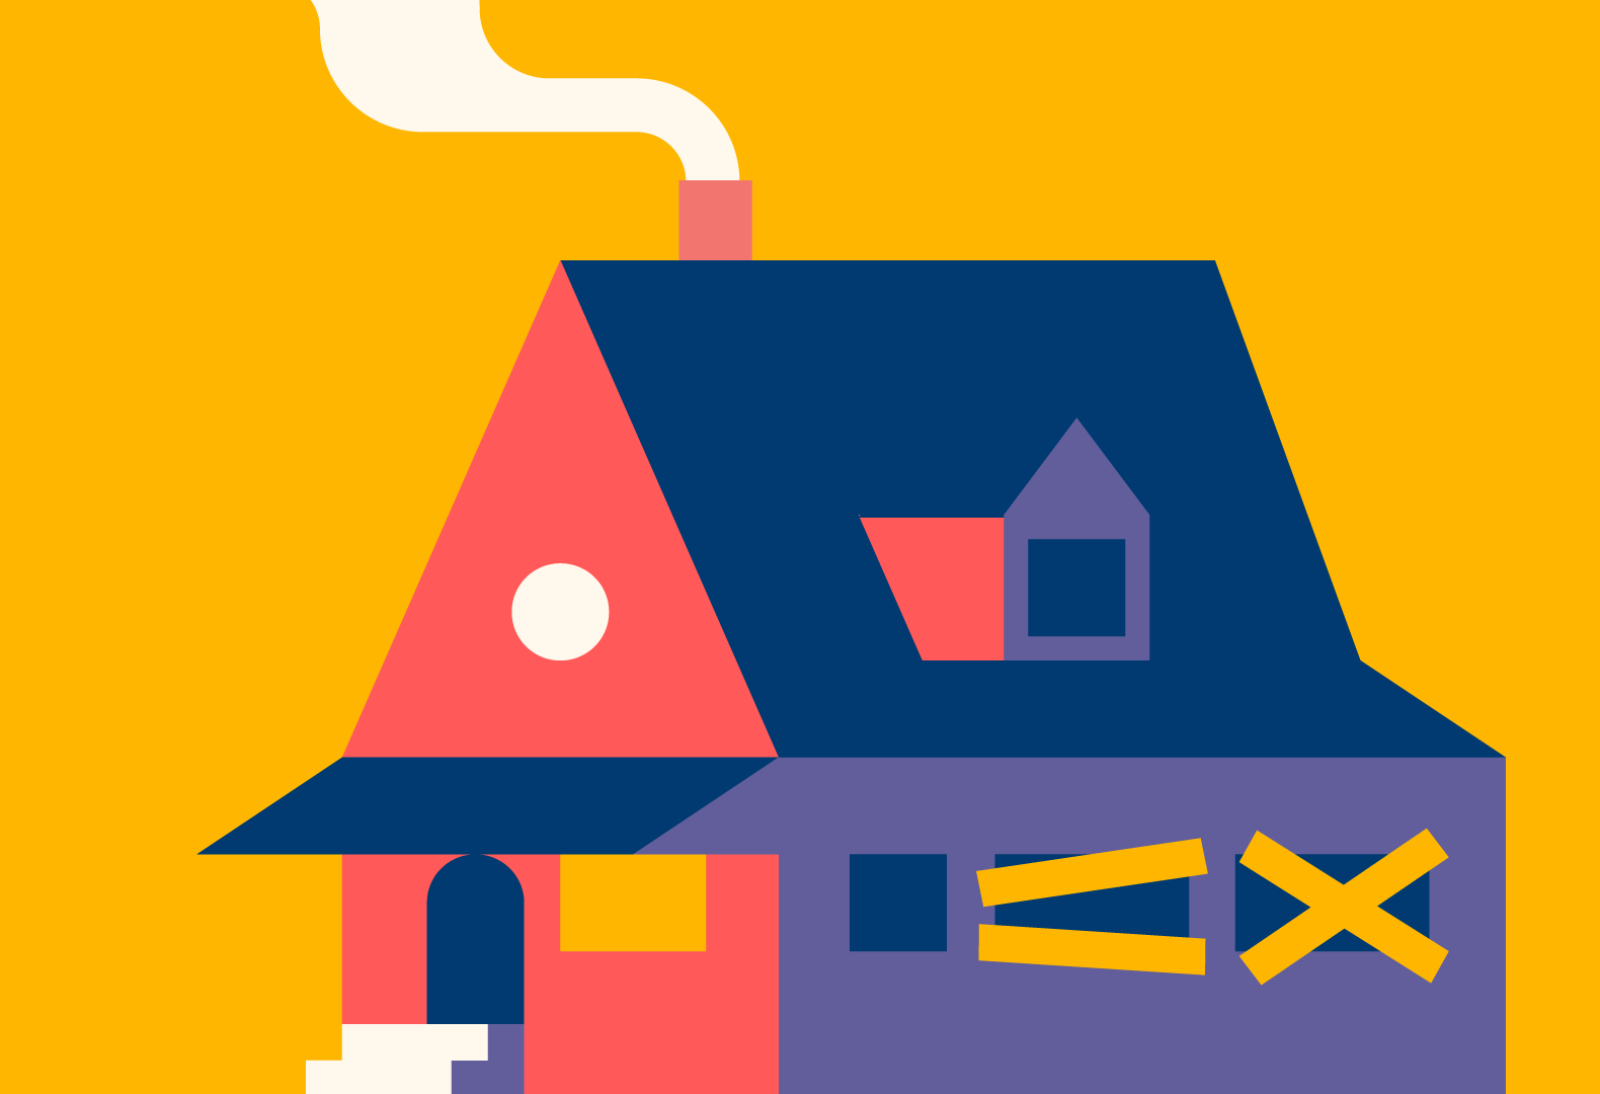 Illustrated house used as inspiration in the Fabled digital product.